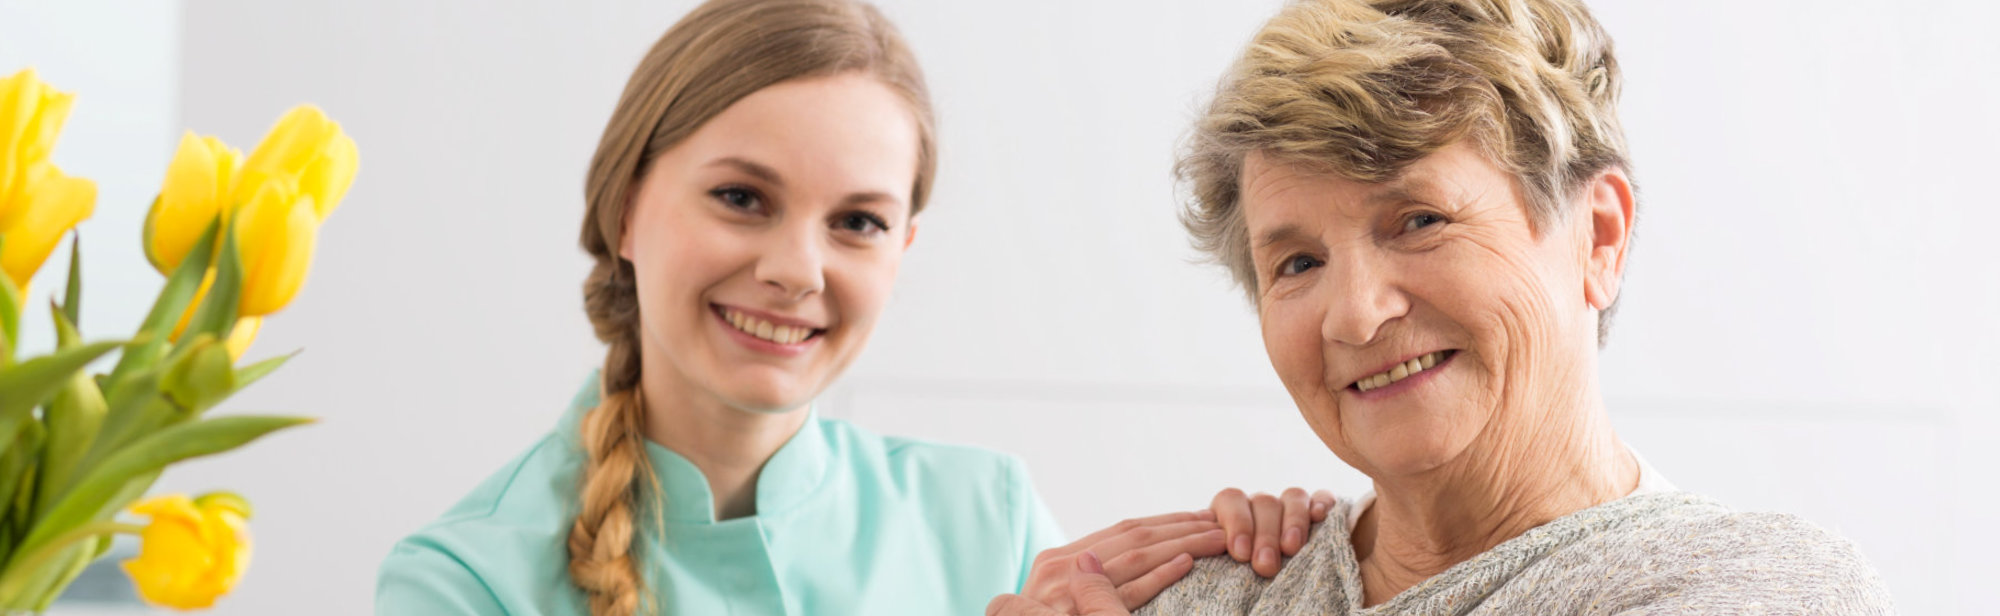 Smiling nurse and old woman